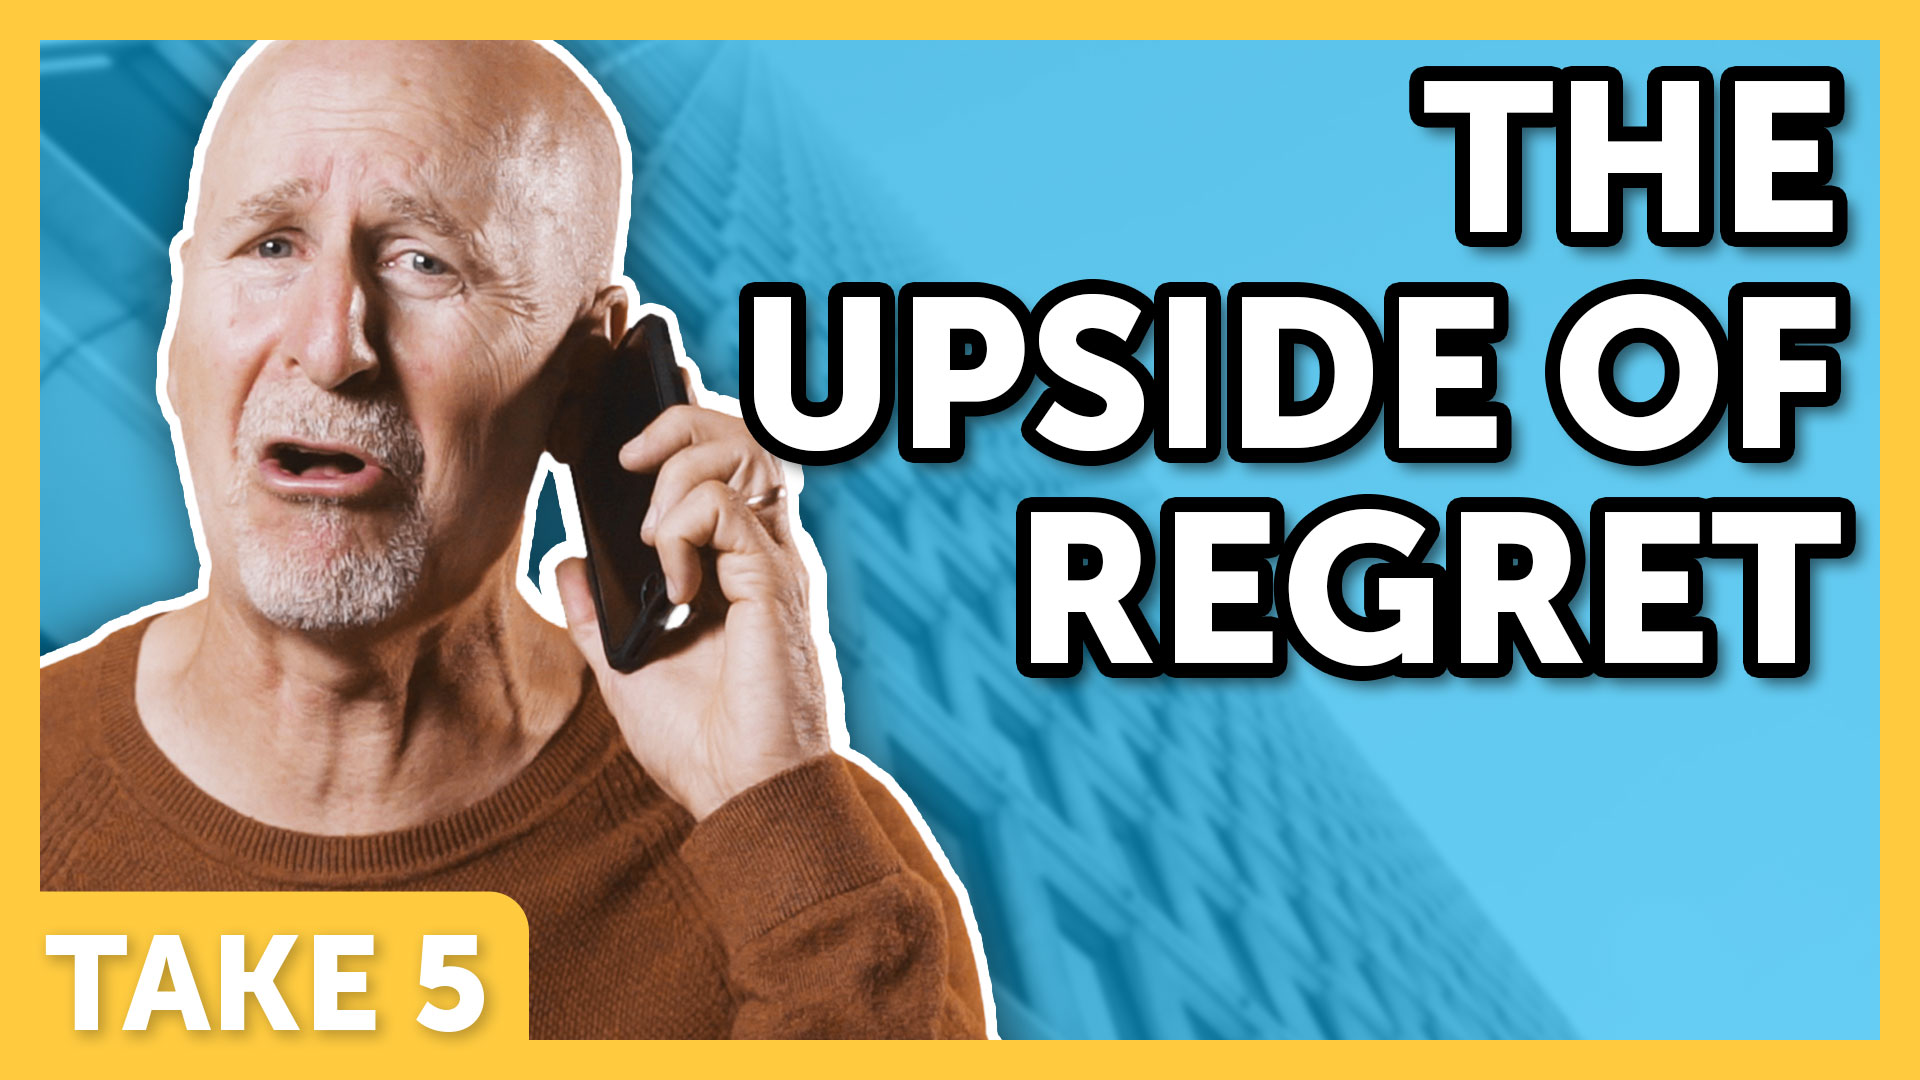 The Upside of Regret - Laugh Again Take 5 with Phil Callaway | Laugh Again TV